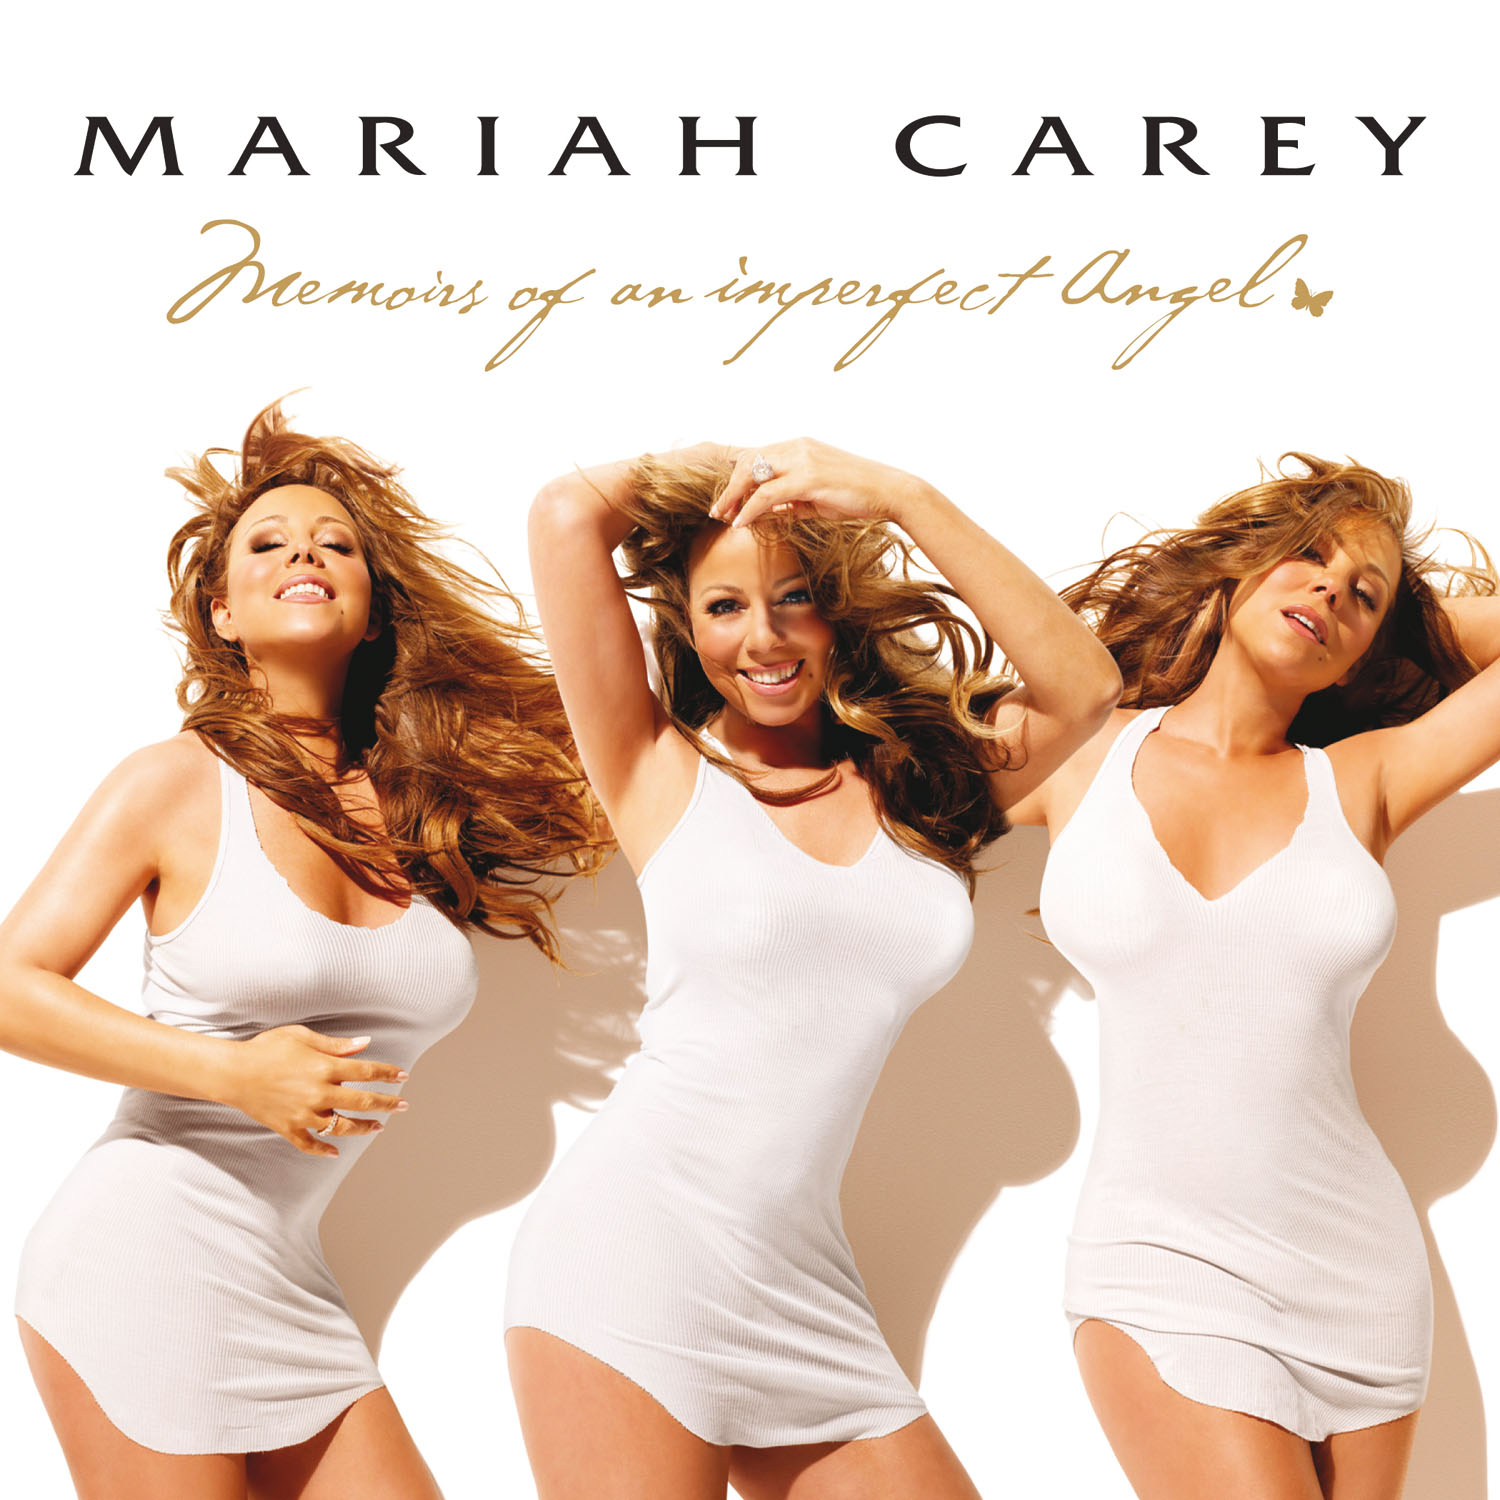 I have some friends that are quite, um, they have inner anger. - Mariah Carey